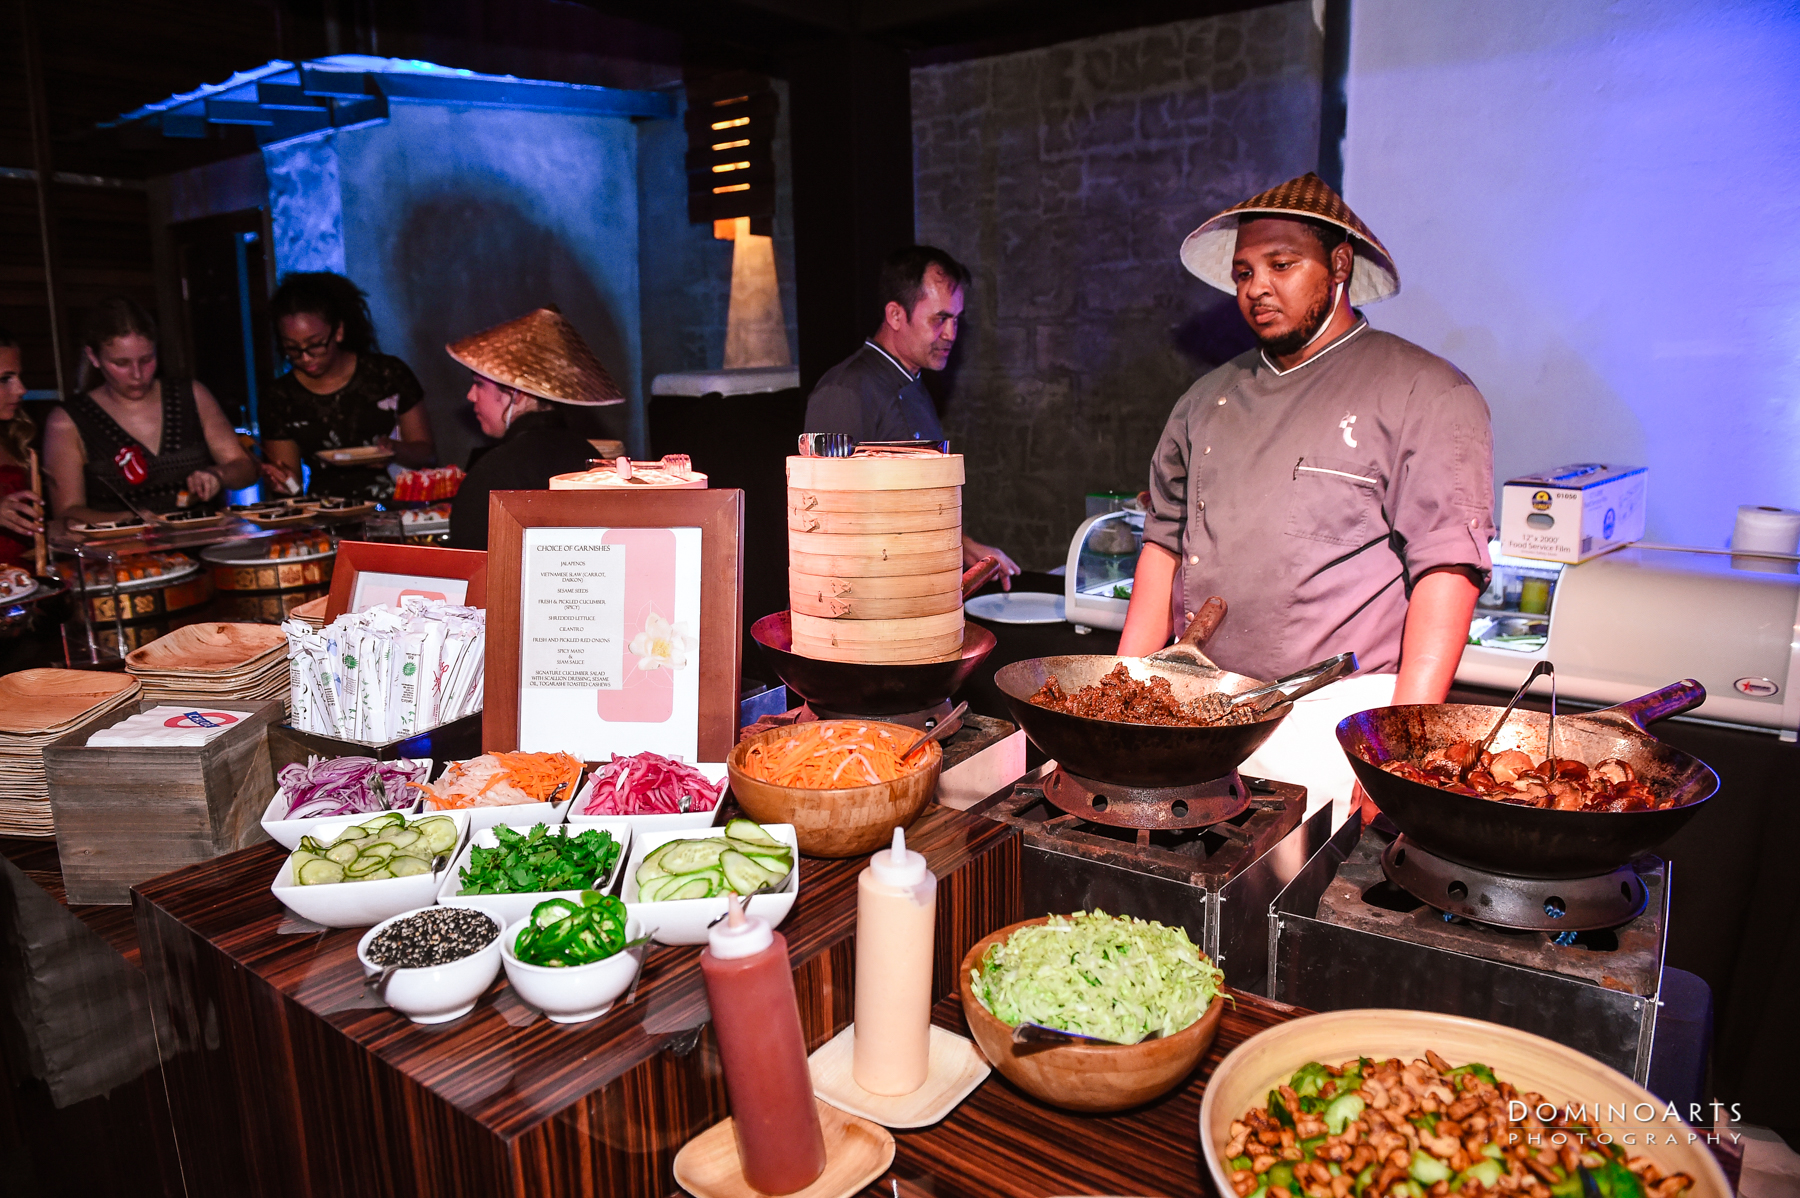 Street Food Catering Concept for Bat Mitzvah